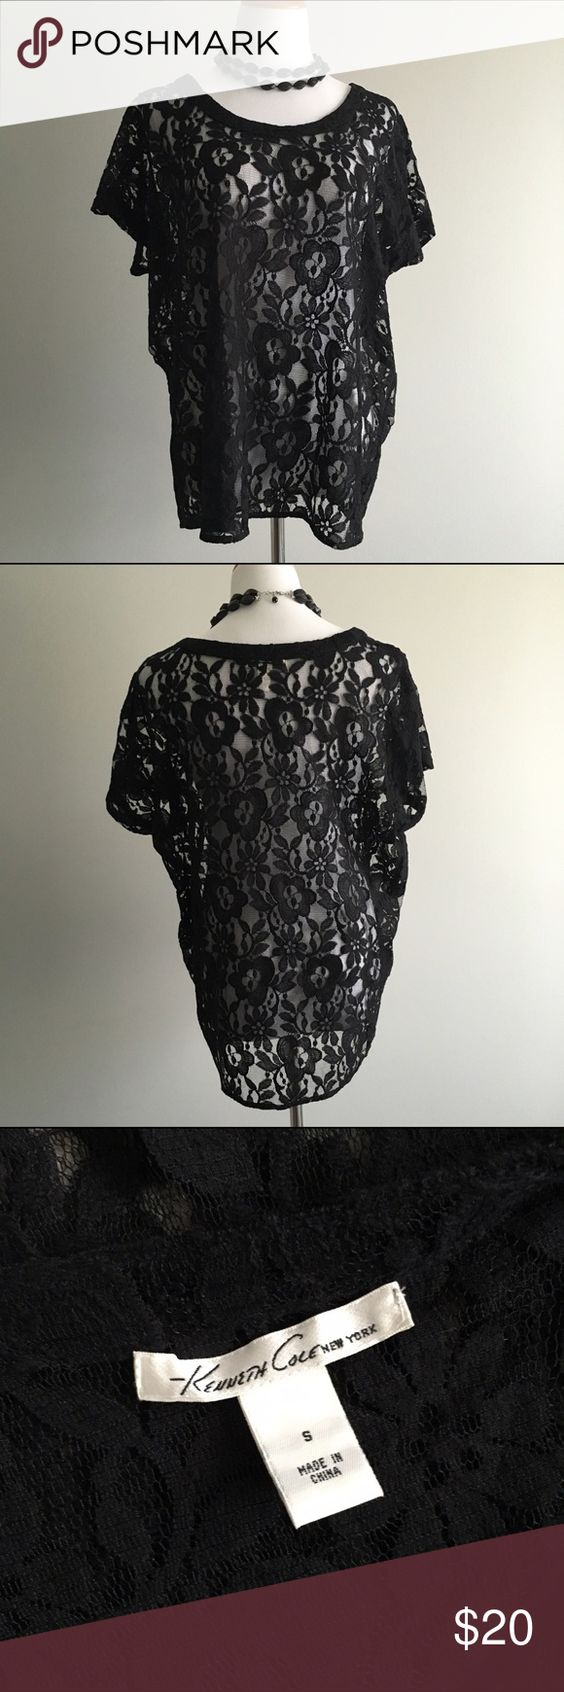 Kenneth Cole NY Black Lacey Floral Top Black floral lace top by Kenneth Cole NY. Size S but can also fit M (it's a roomy style). Pair it with a cami! Cotton/nylon blend. Kenneth Cole Tops Tees - Short Sleeve